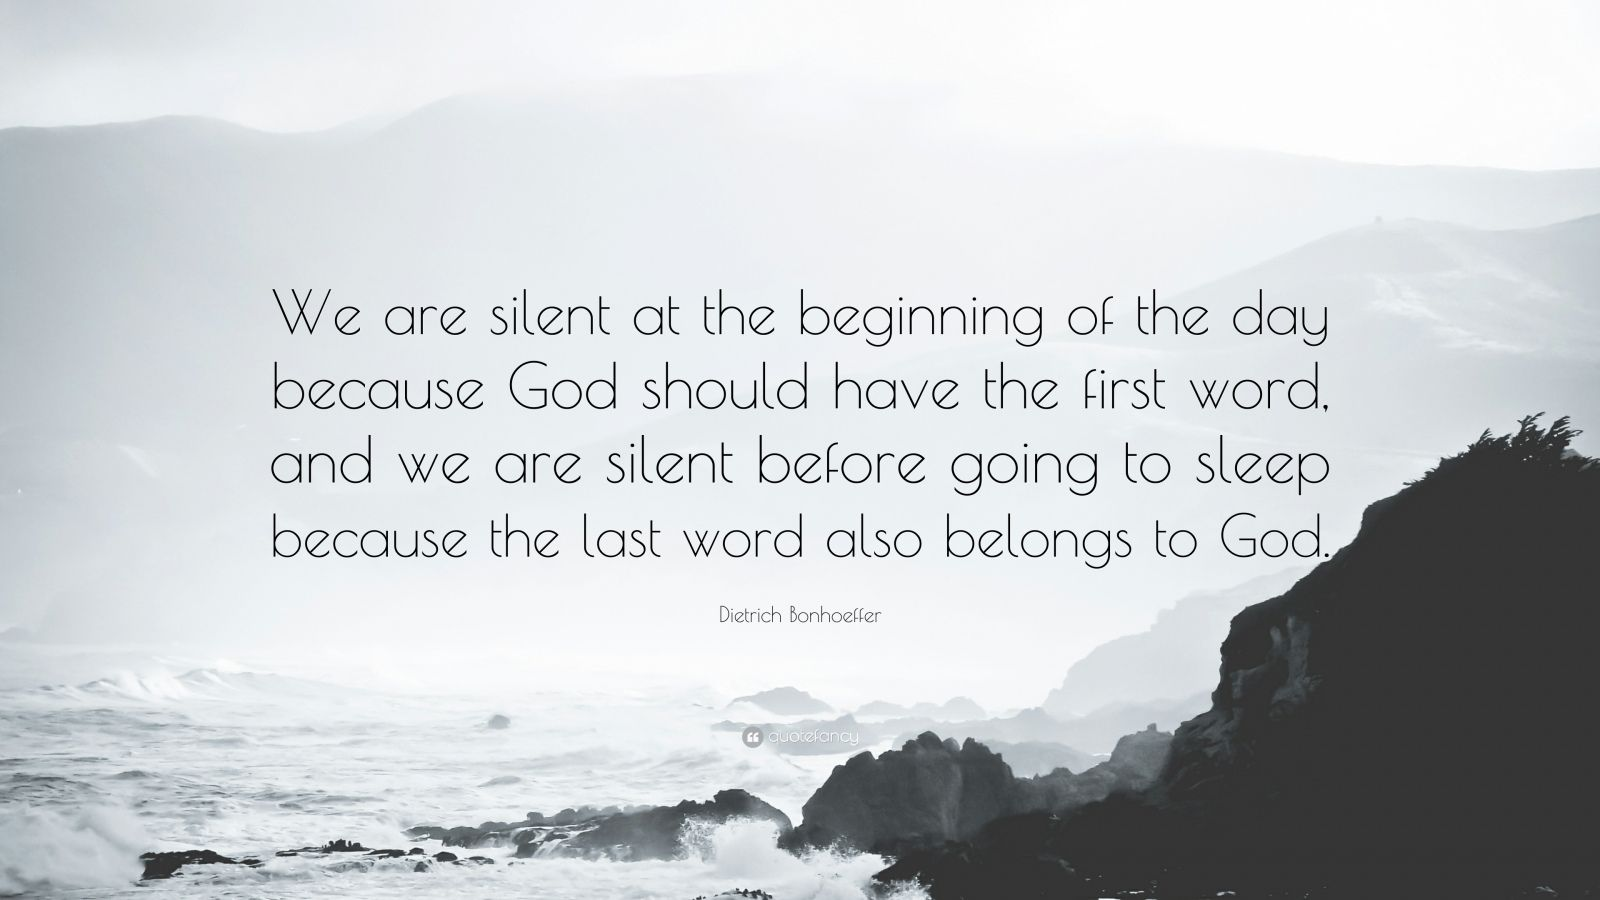 """Dietrich Bonhoeffer Quote: """"We are silent at the beginning of the day because God should have the first word, and we are silent before going to sleep because the last word also belongs to God."""""""